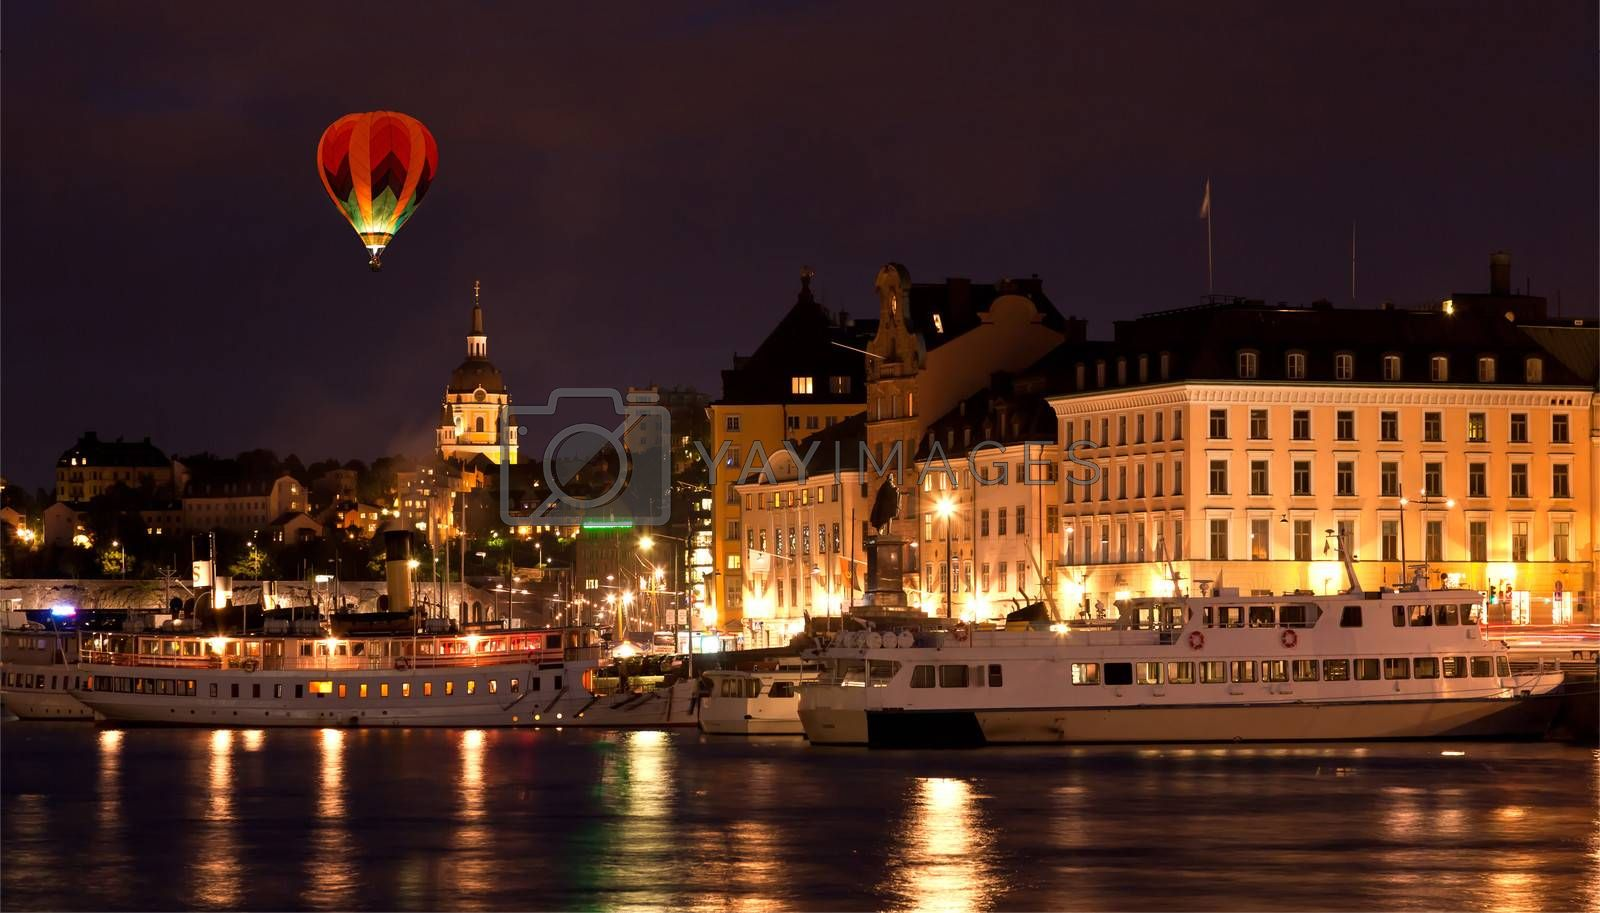 The Royal Palace in Stockholm at night